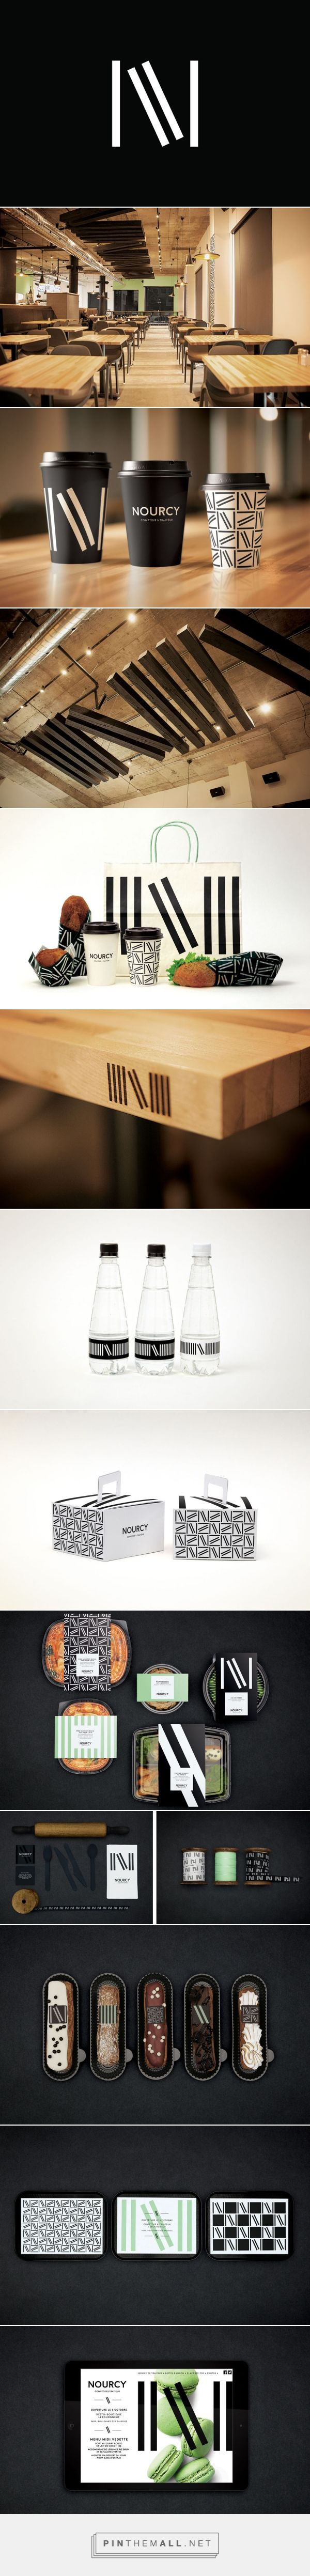 New Brand Identity for Nourcy by lg2boutique